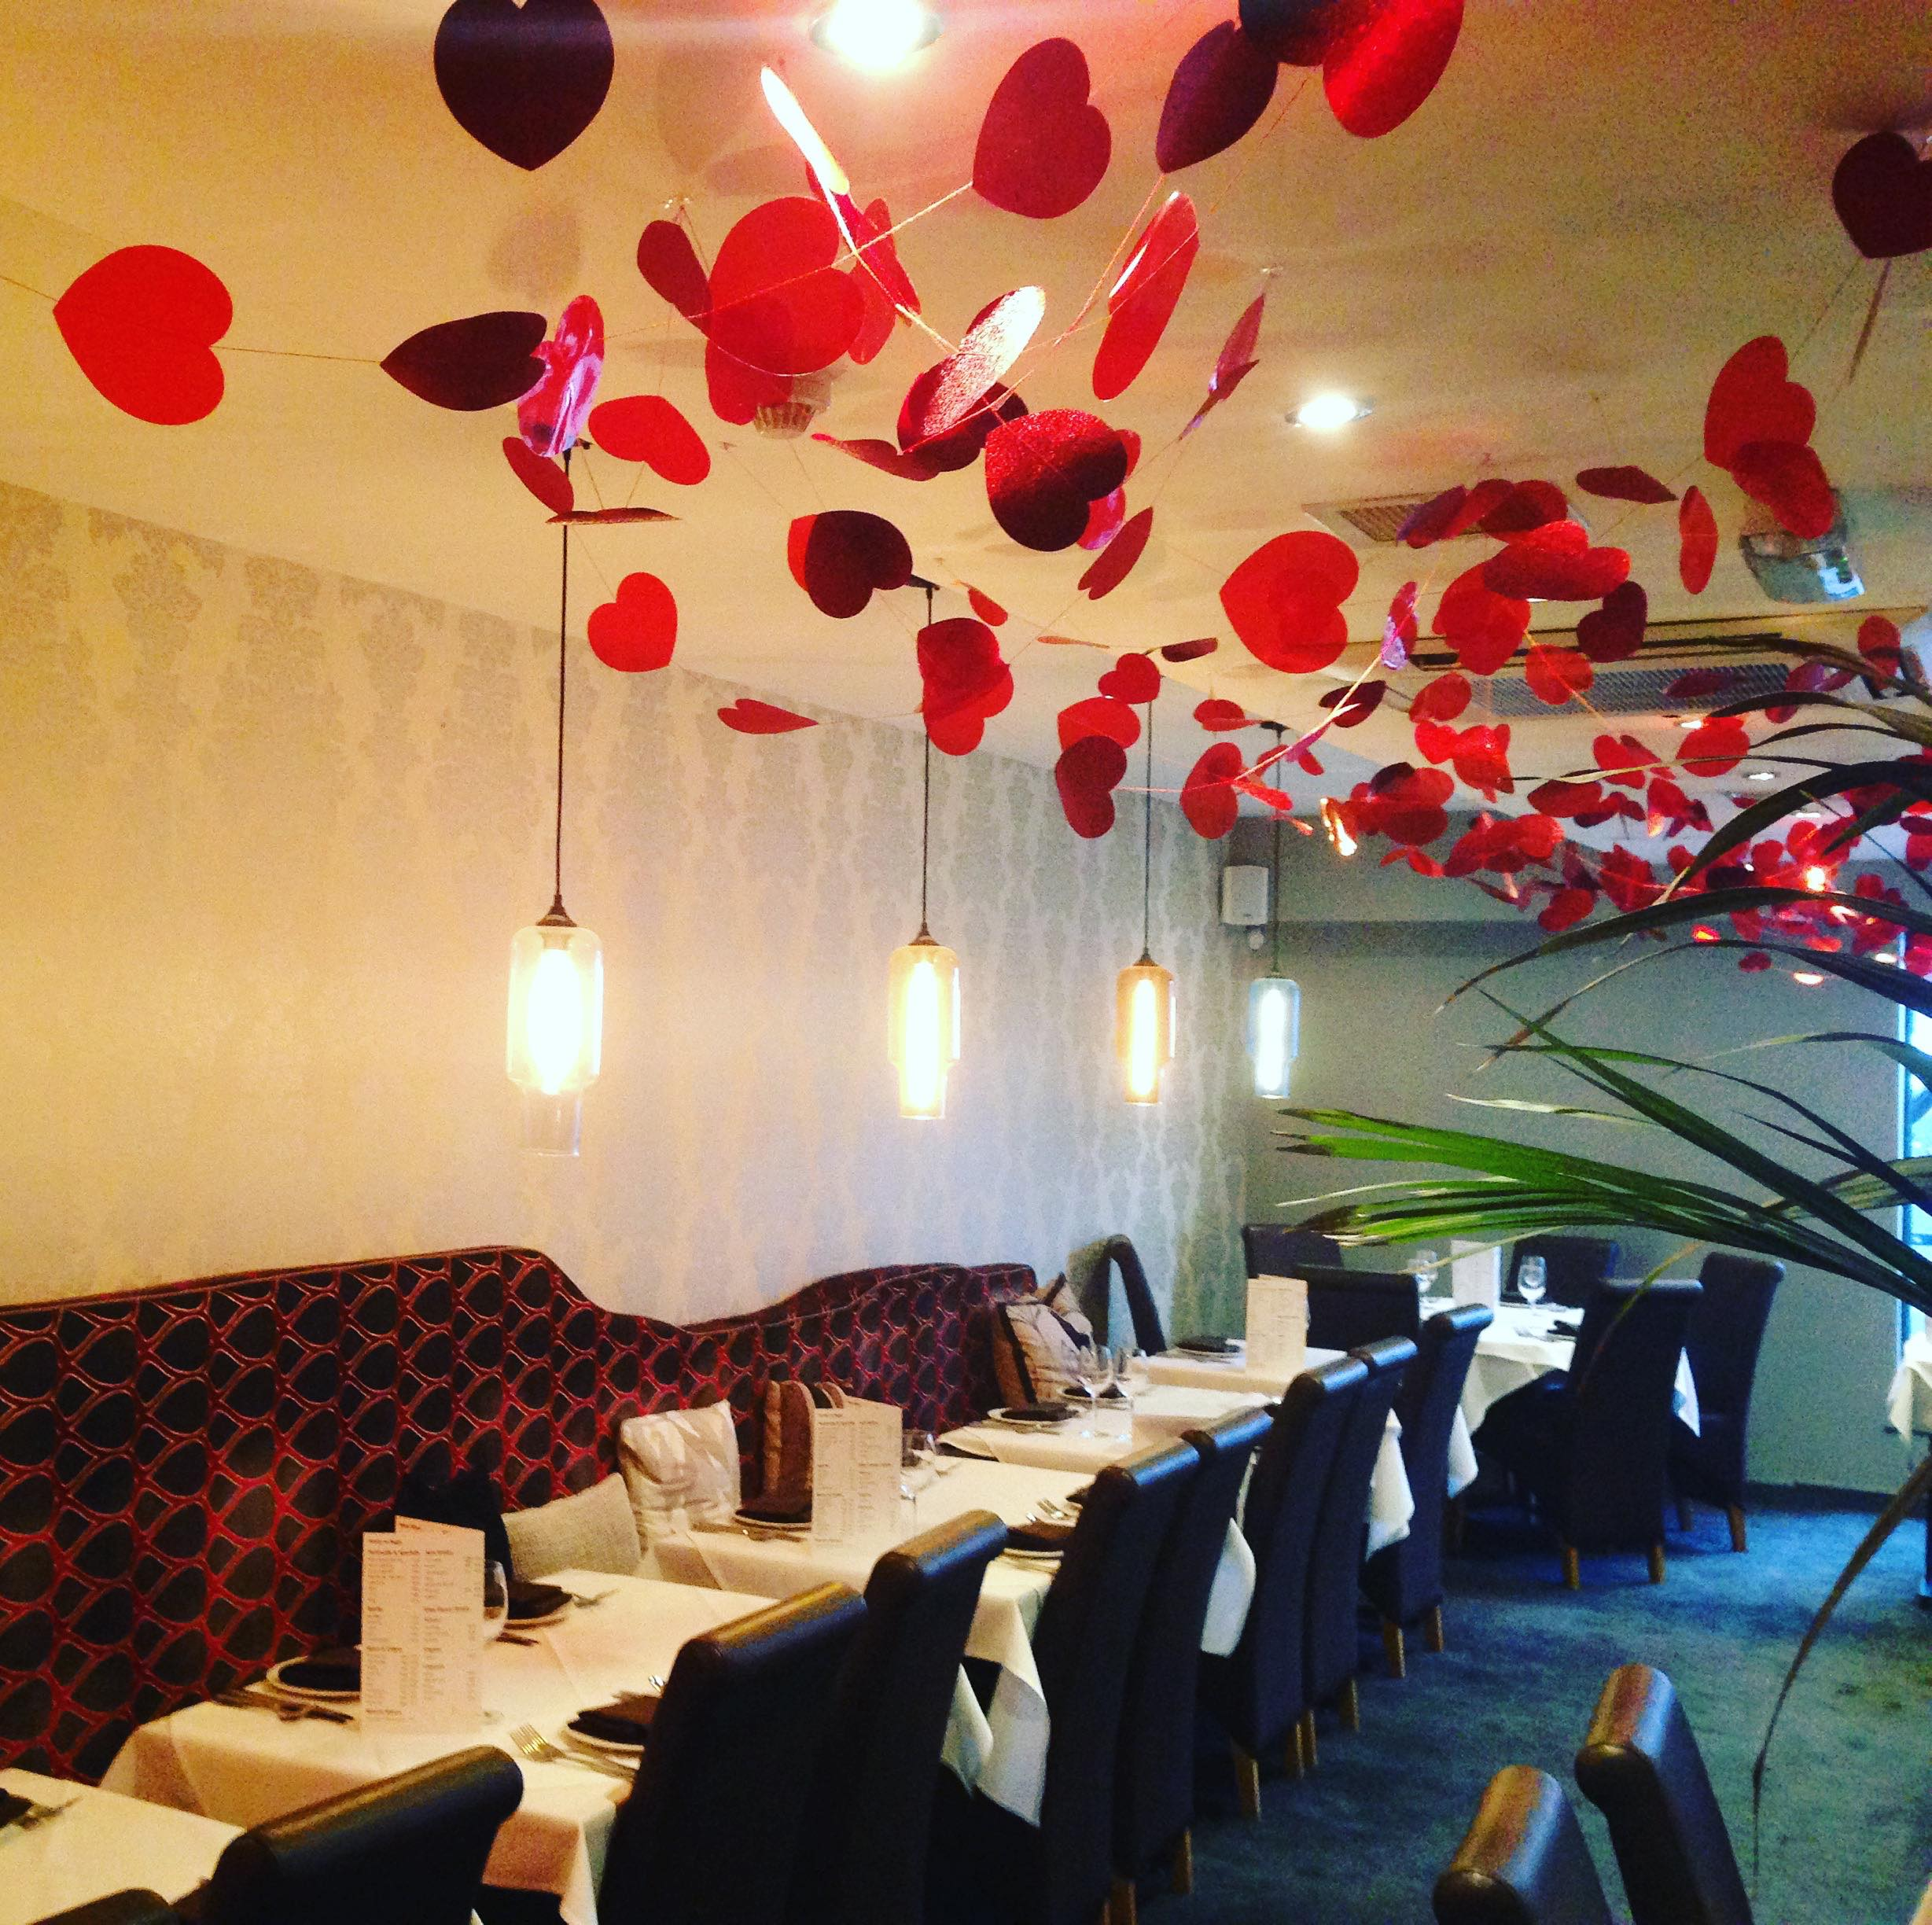 Valentines Day at Dine India